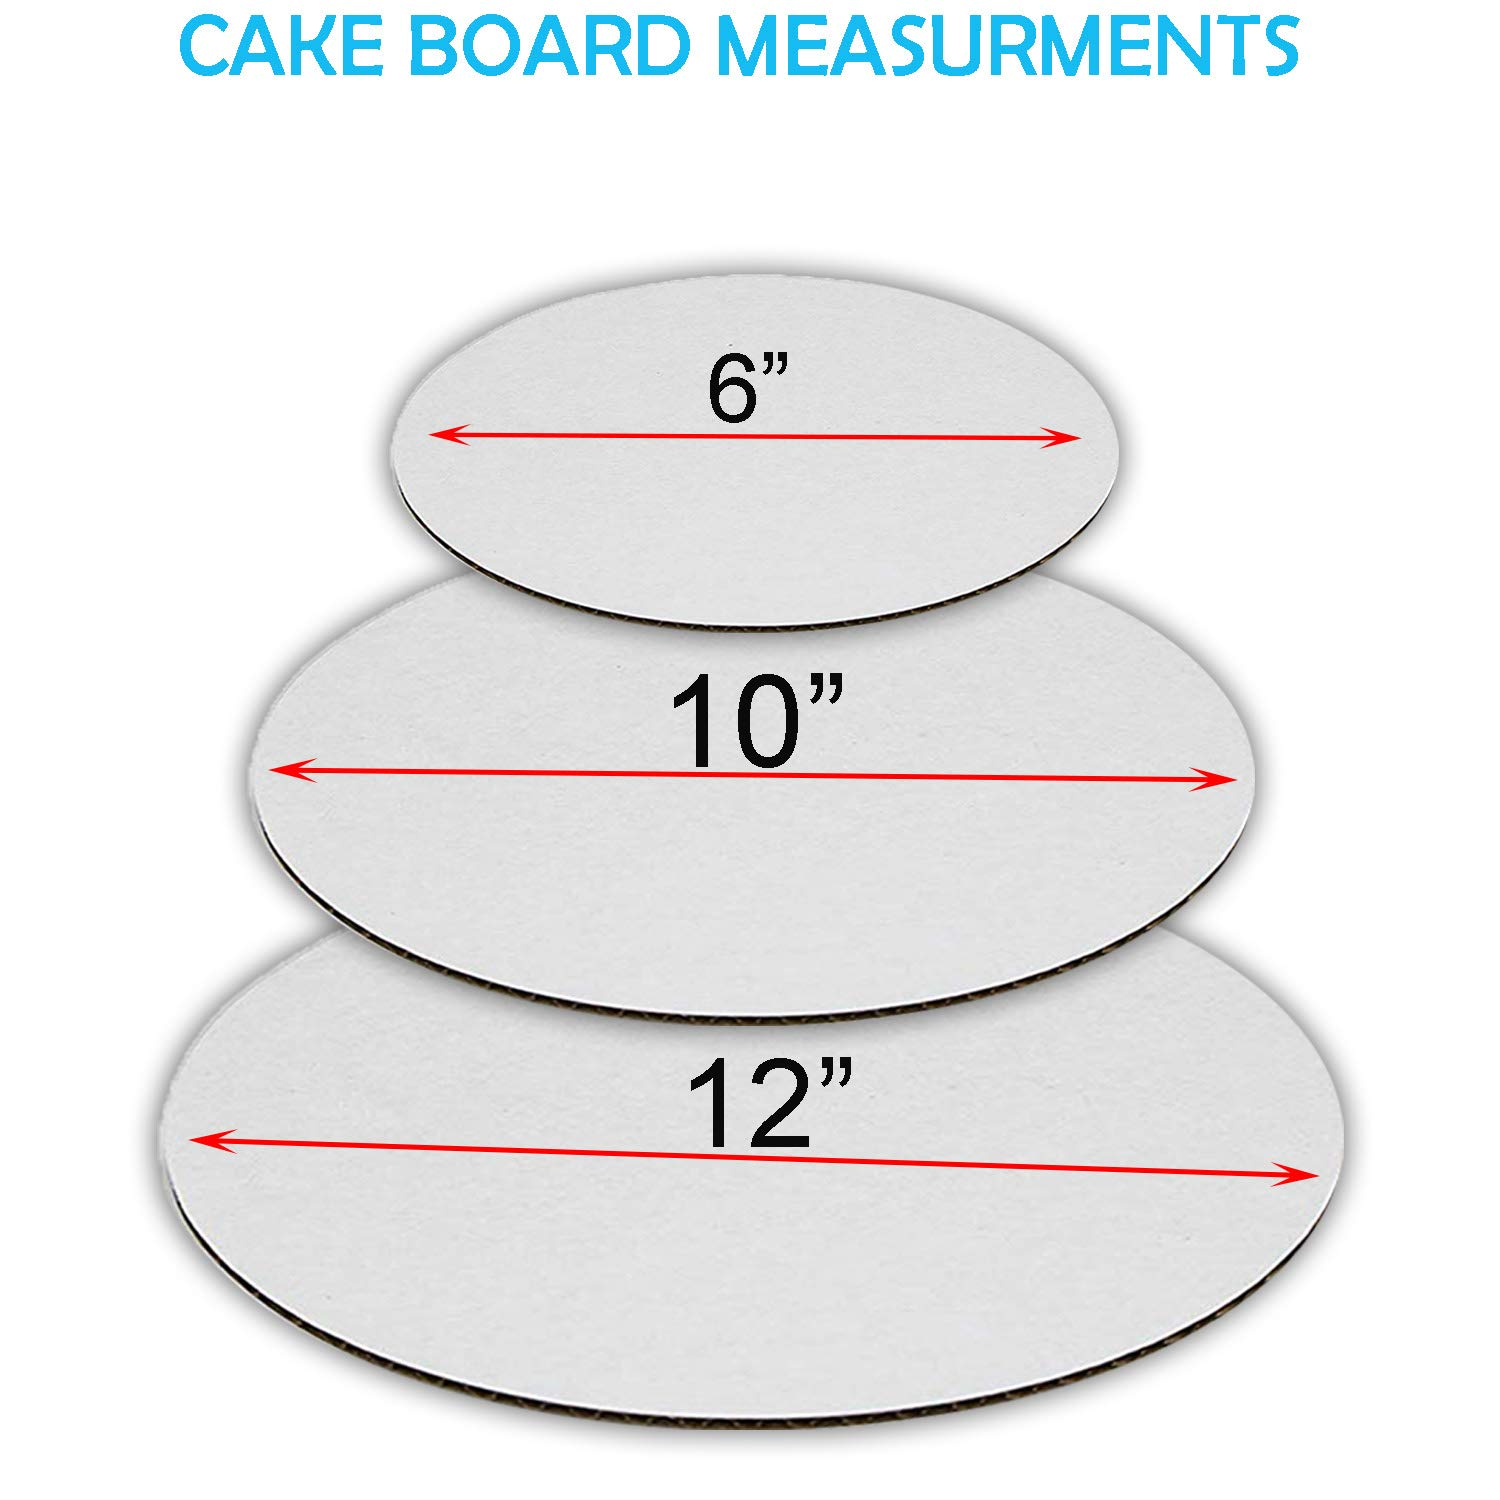 Cardboard Cake Rounds Cake Board Cake Base 6 of each Cake Boards set of 18 and Cake Boards 12 Inch Cake Circles. Cake Boards 6 inch Cake Boards 10 inch